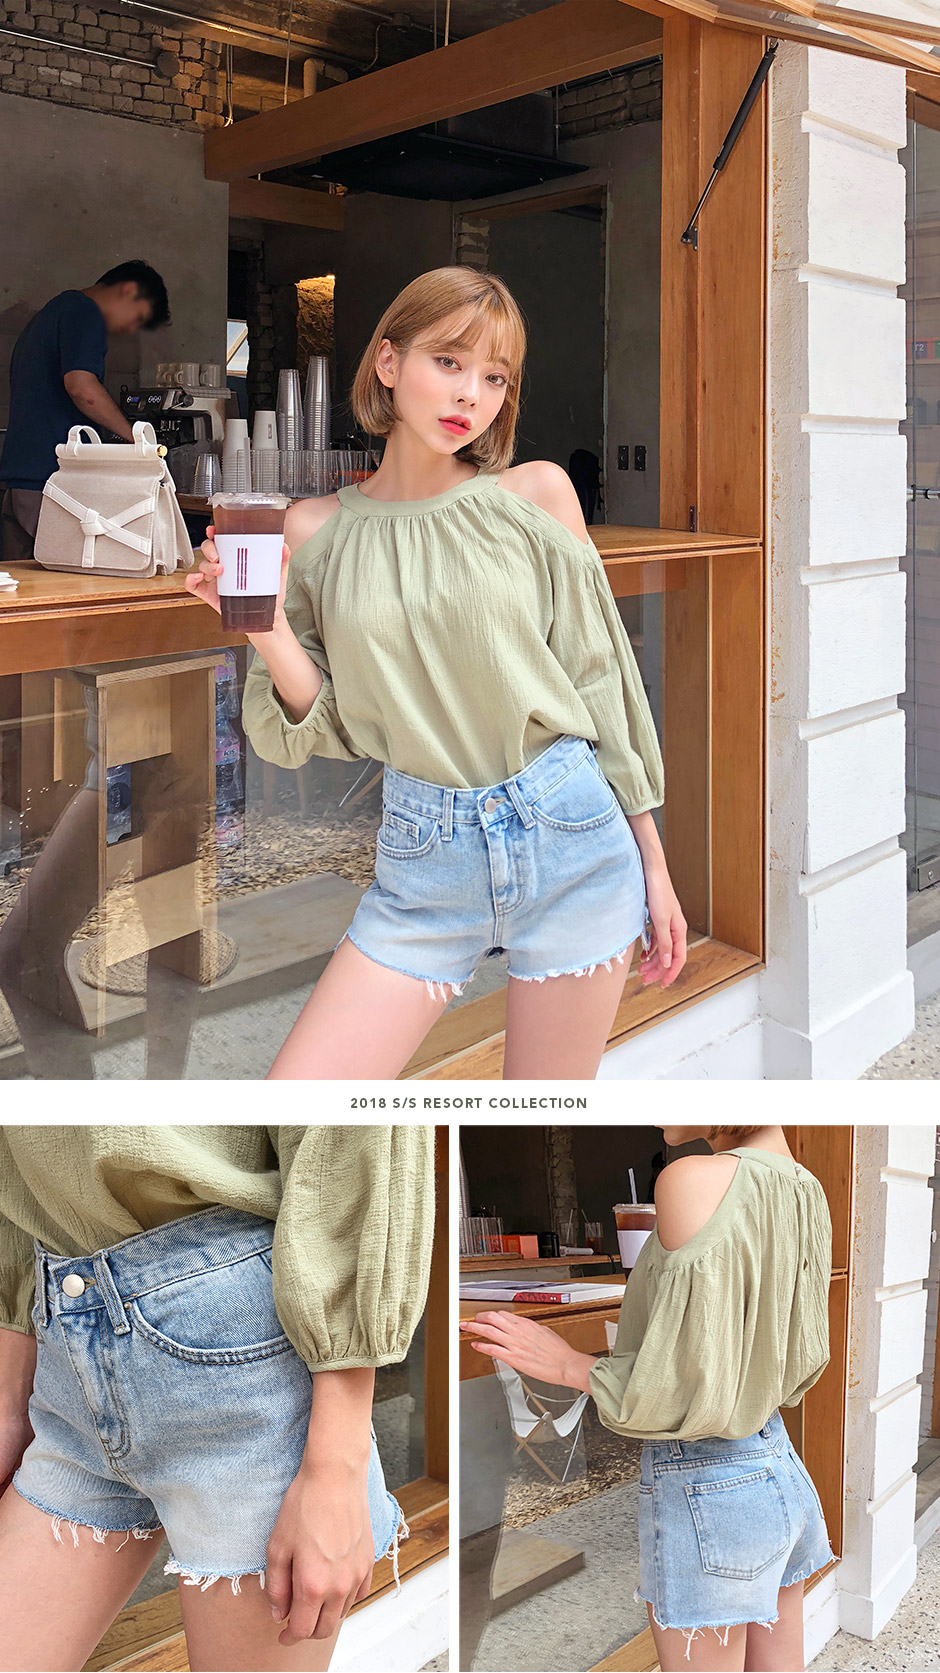 //cdn.nhanh.vn/cdn/store/29770/psCT/20180927/9207938/CHUU_Remember_The_Truth_Blouse_(7).jpg